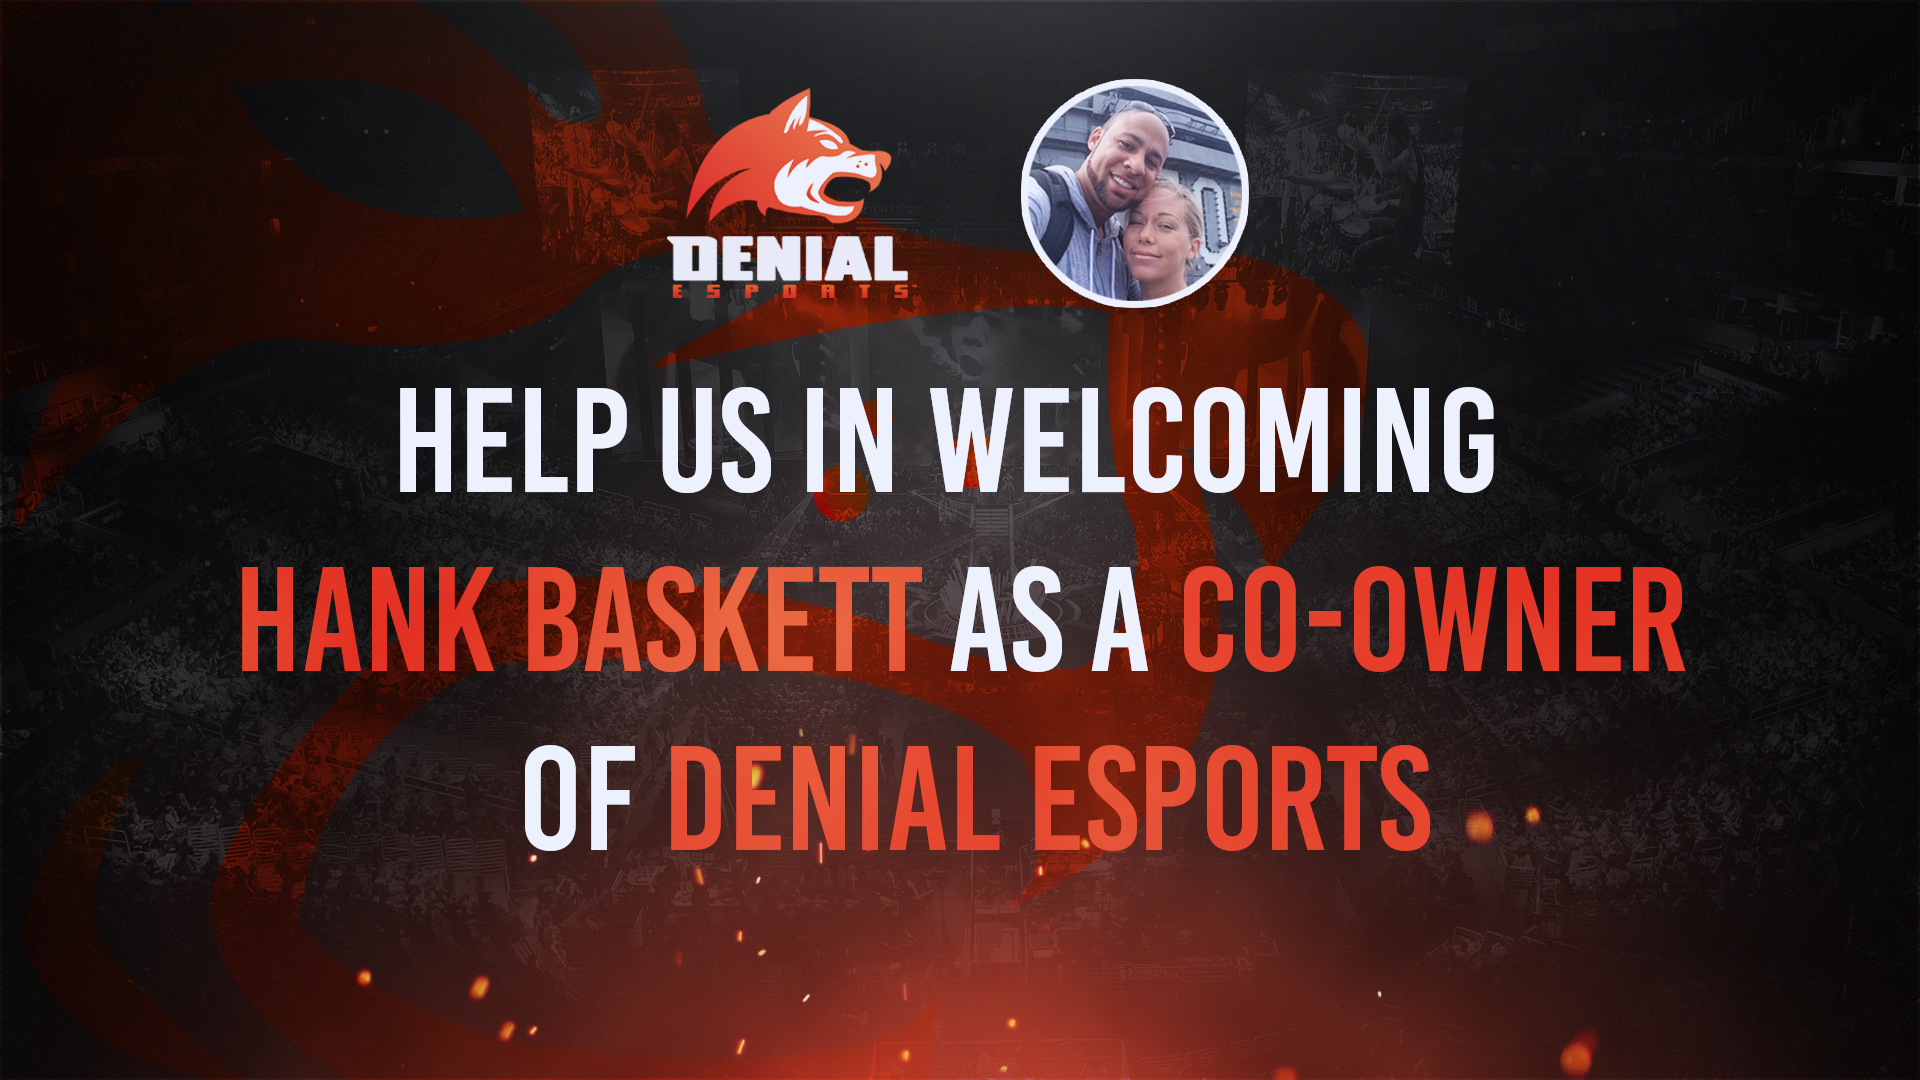 Ex-NFL Player Hank Baskett Becomes Co-Owner of Denial eSports (Photo: Denial eSports)